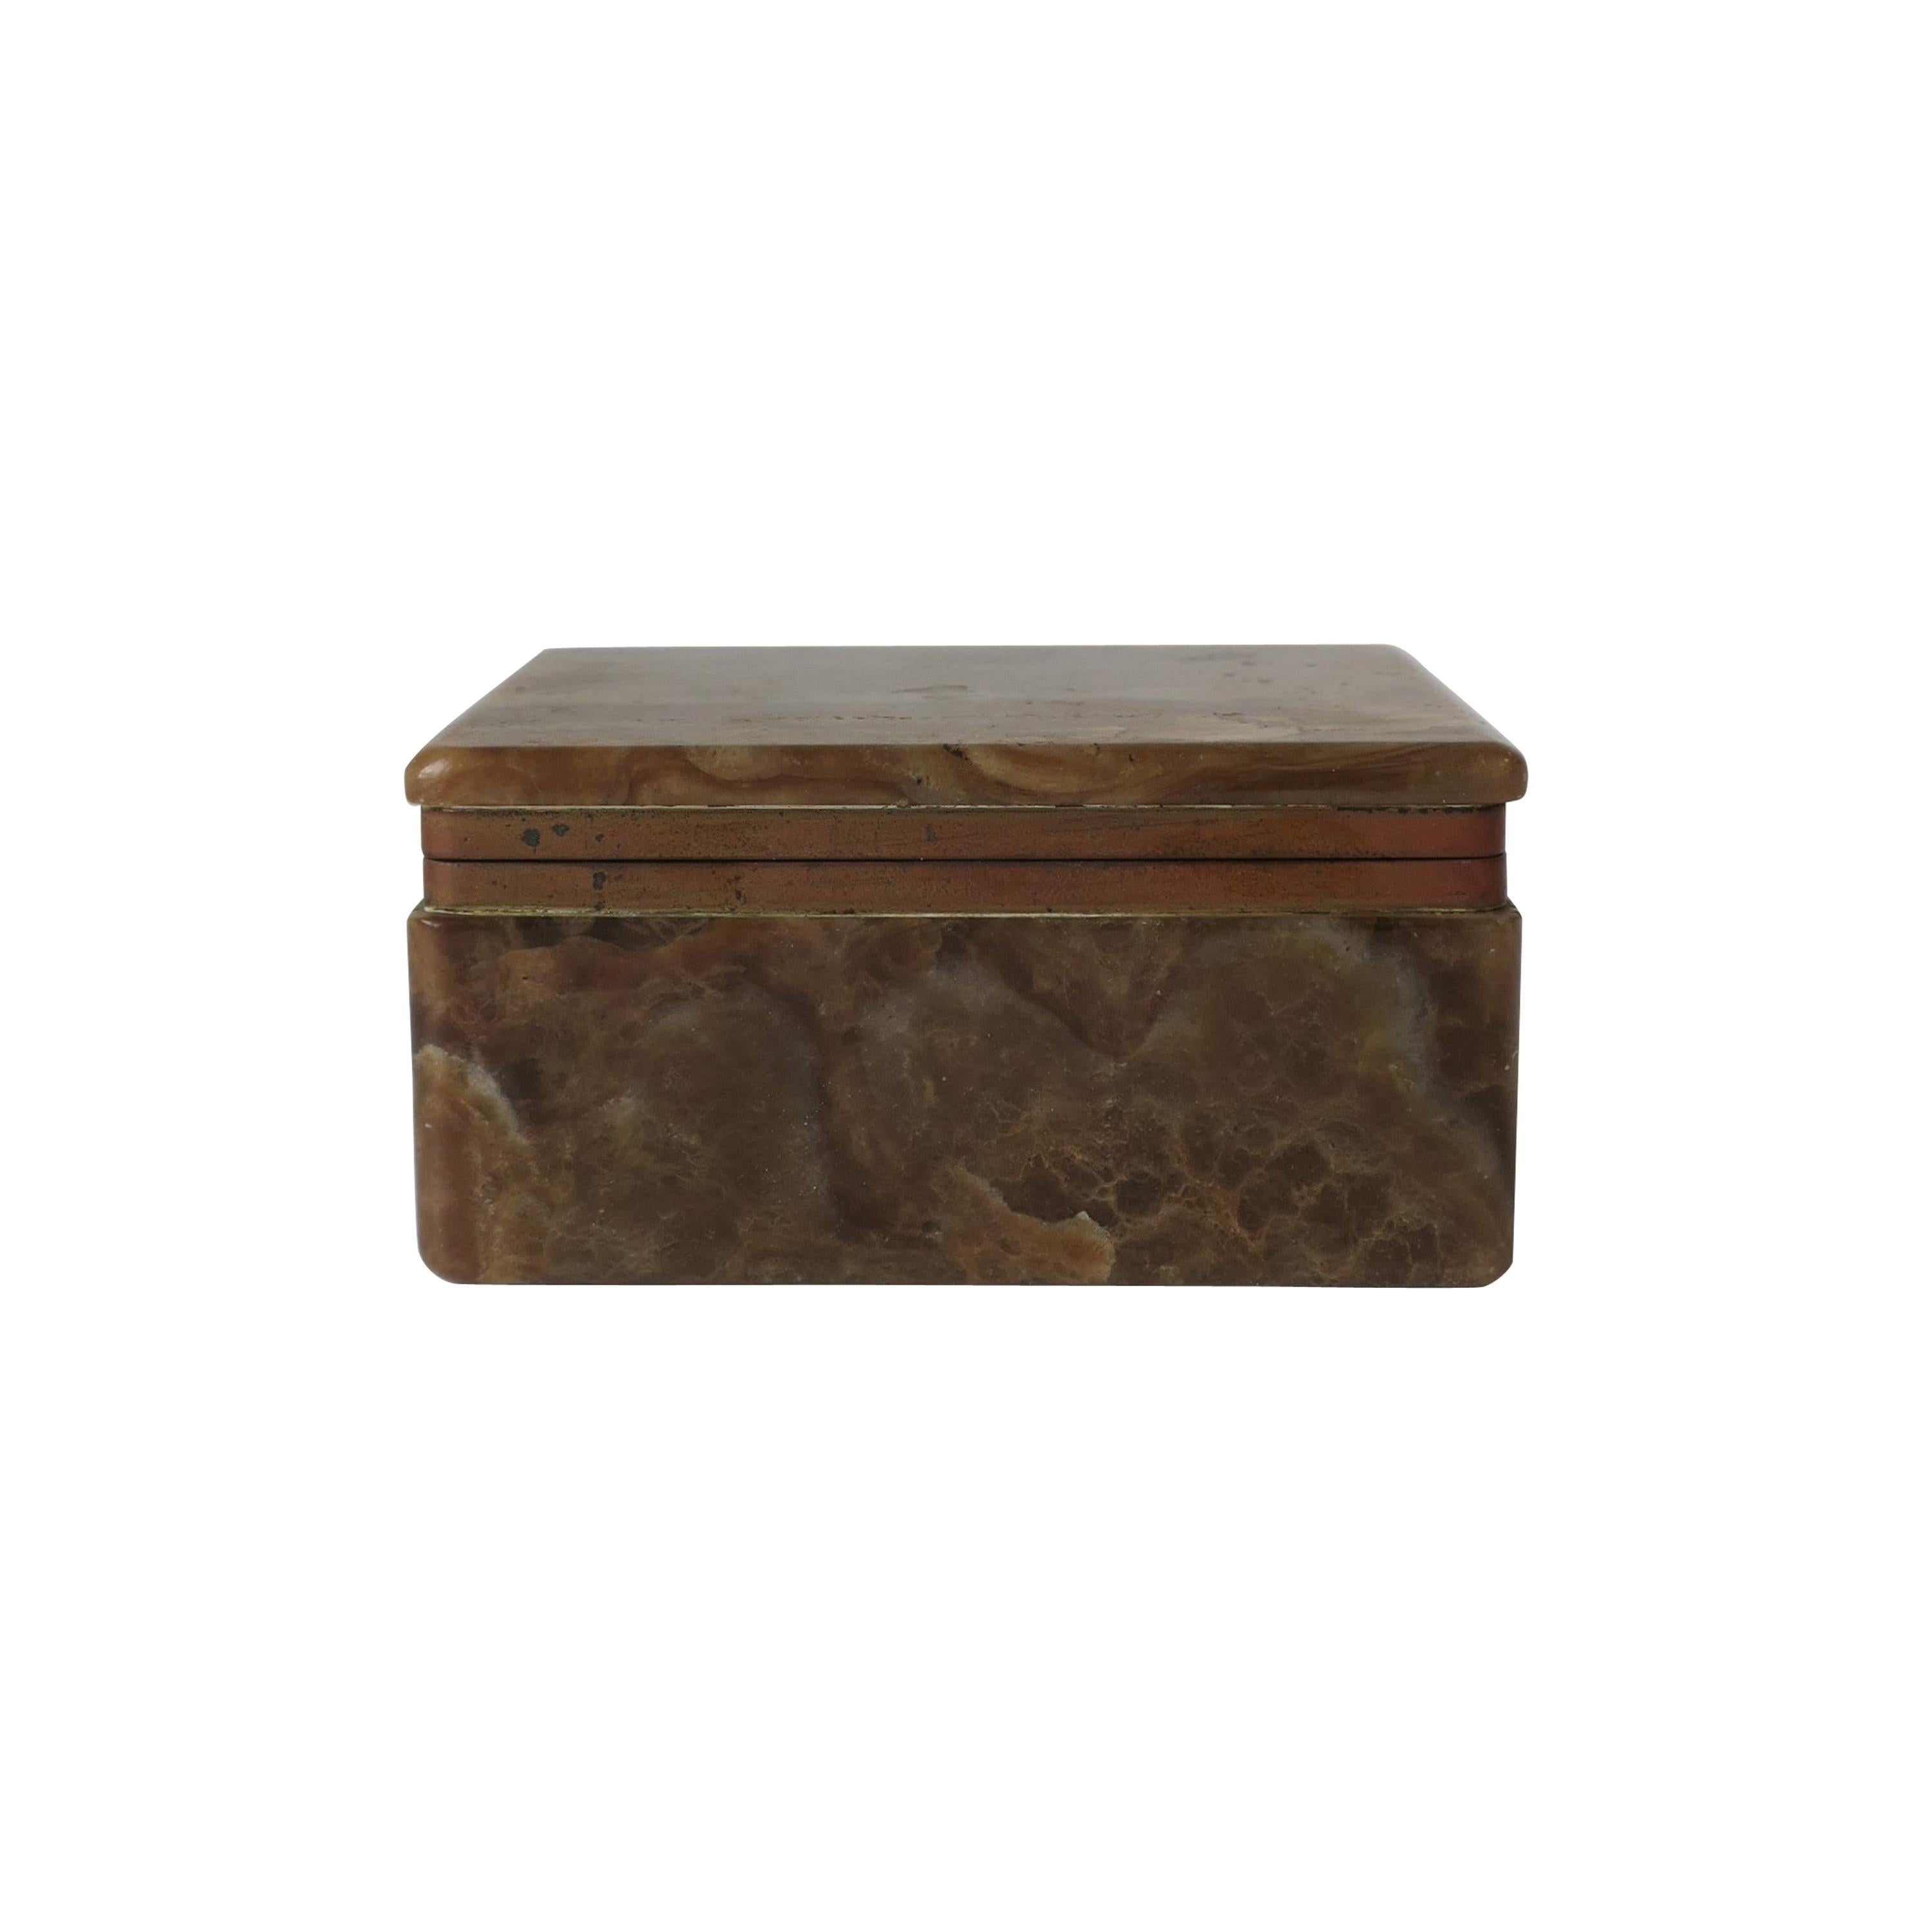 Modern Onyx Marble and Brass Jewelry Box from Belgium